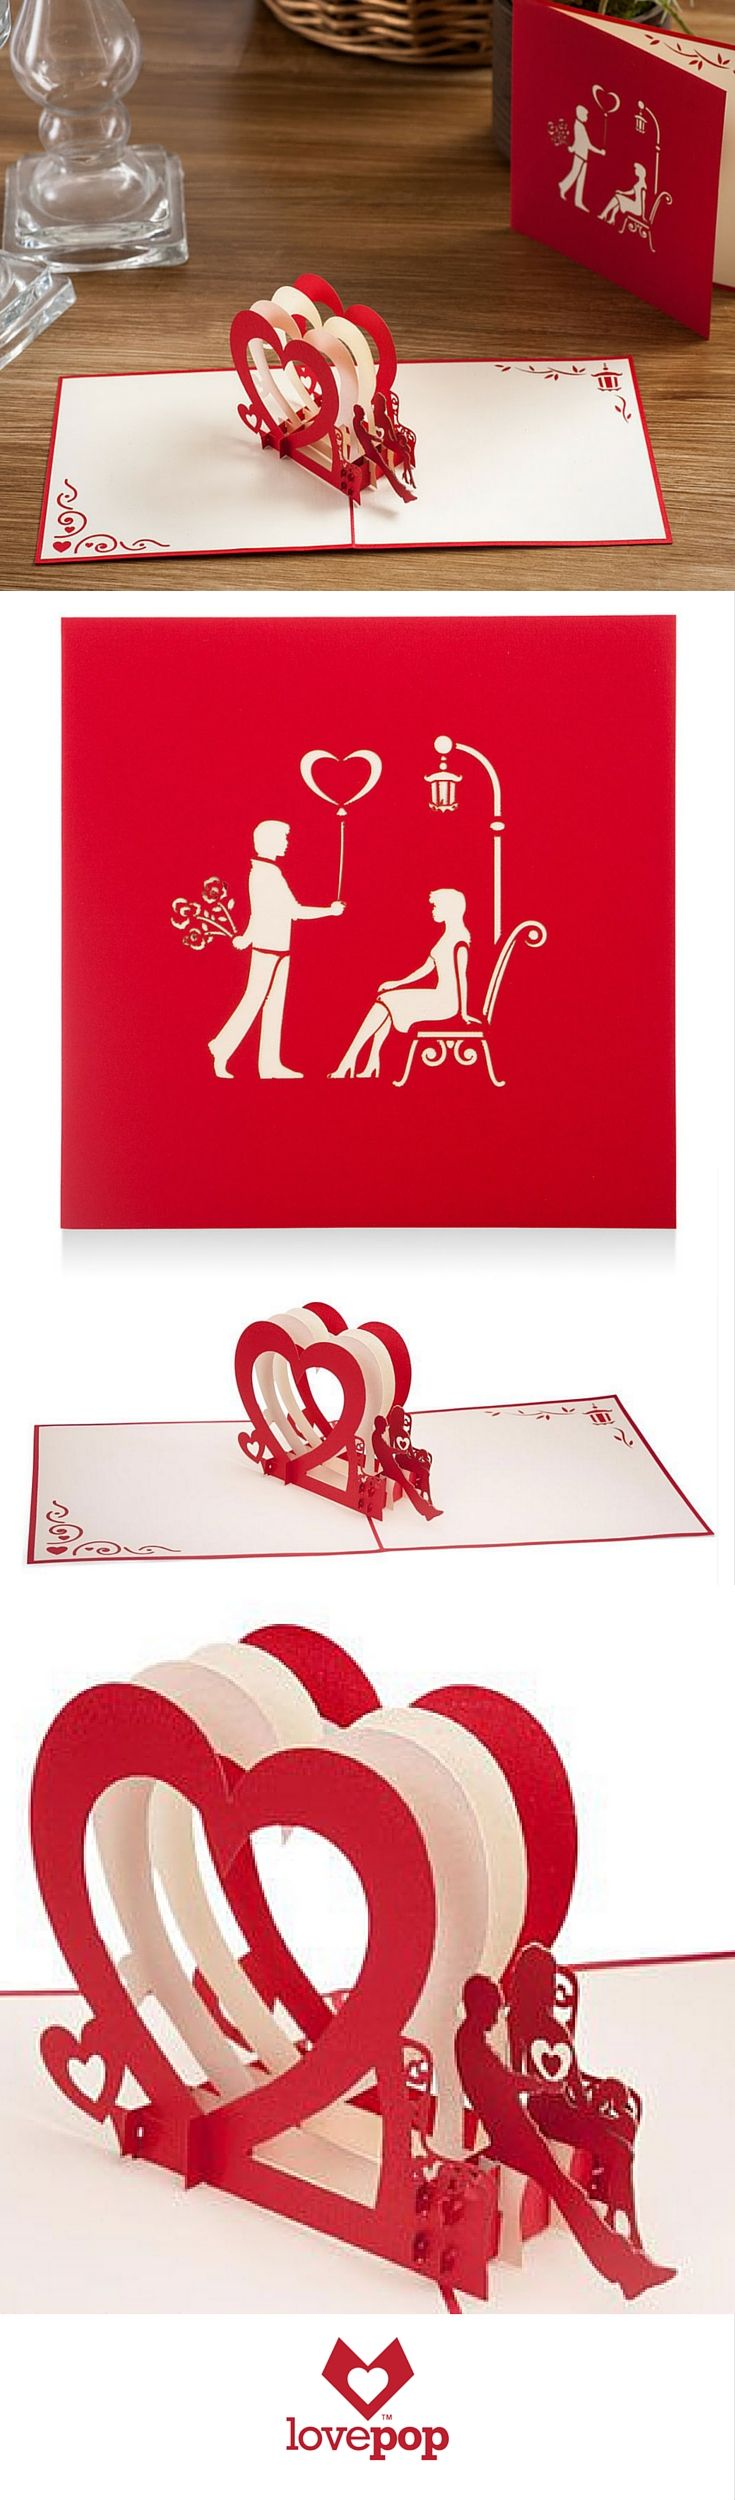 Say I love you with a unique 3D pop up greeting card. Perfect paper art for a proposal, wedding, or anniversary card.